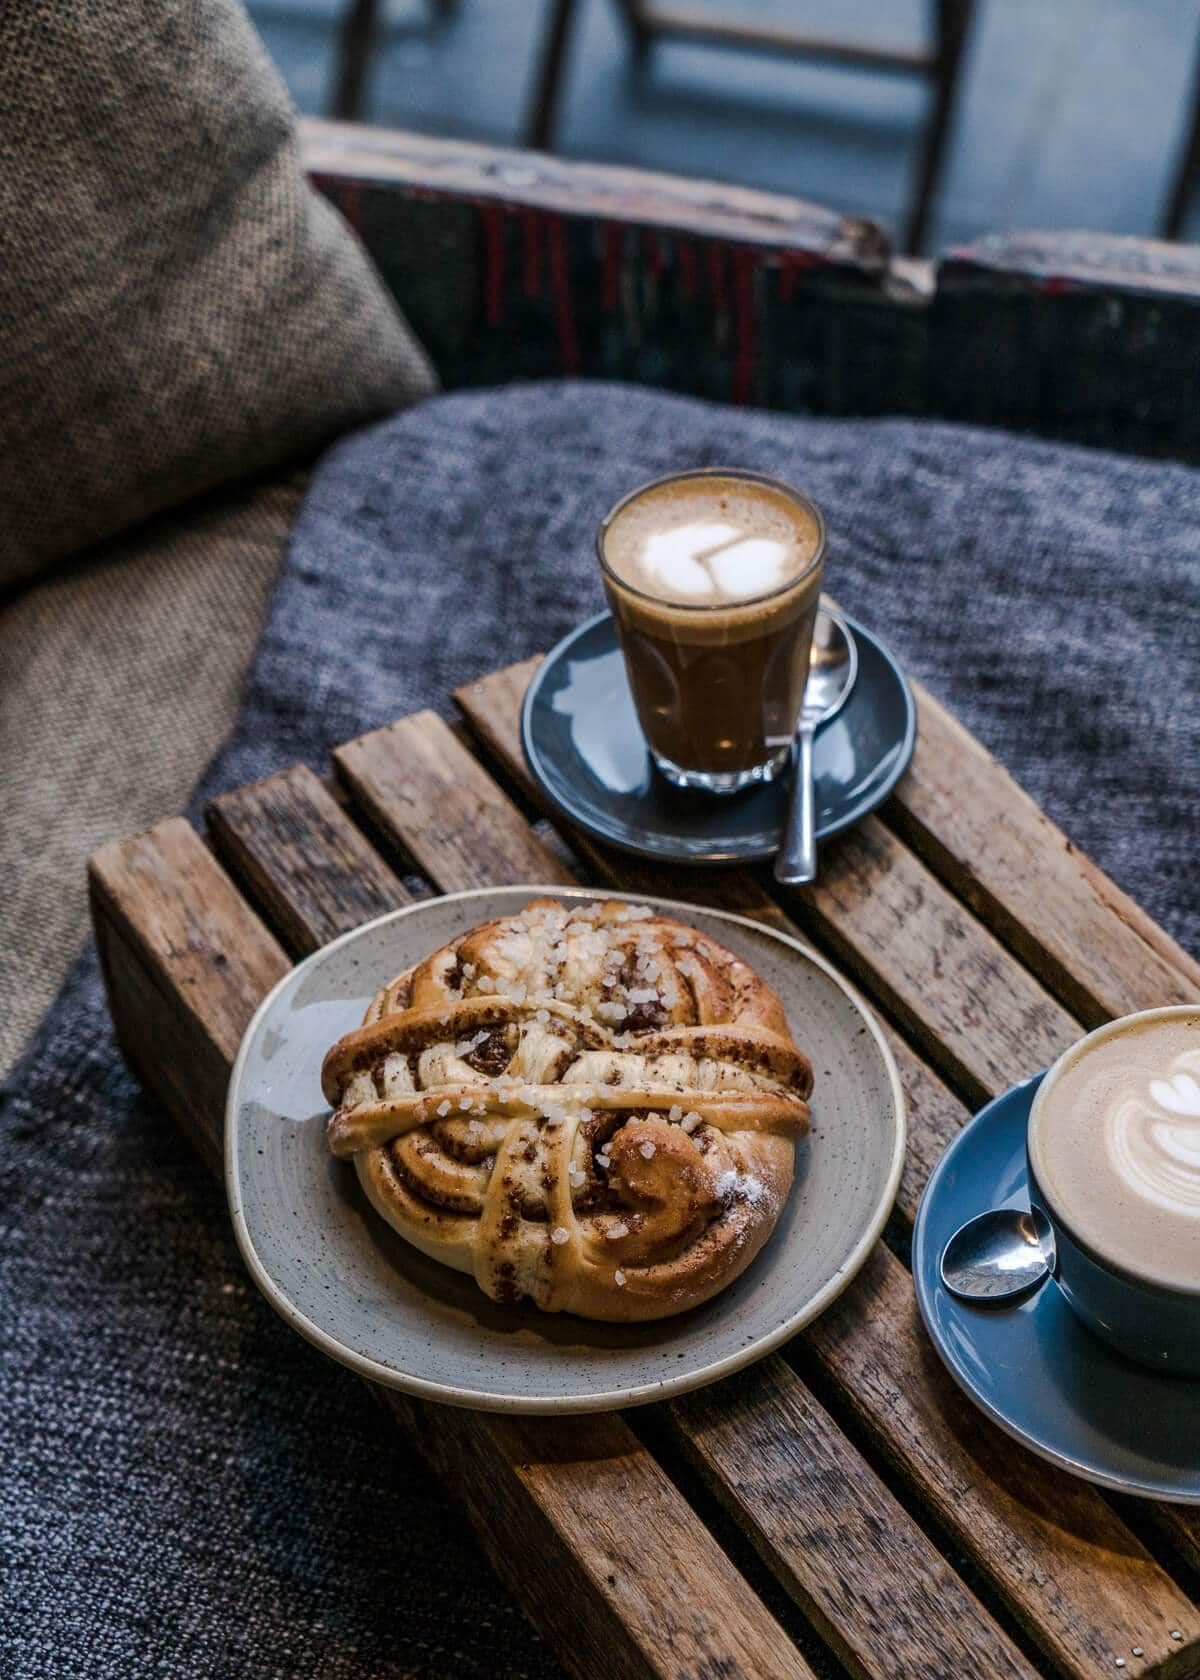 Quick Guide The Best Edinburgh Coffee Shops Bakeries Live Like It S The Weekend In 2020 Coffee Shop Good Bakery Brunch Items